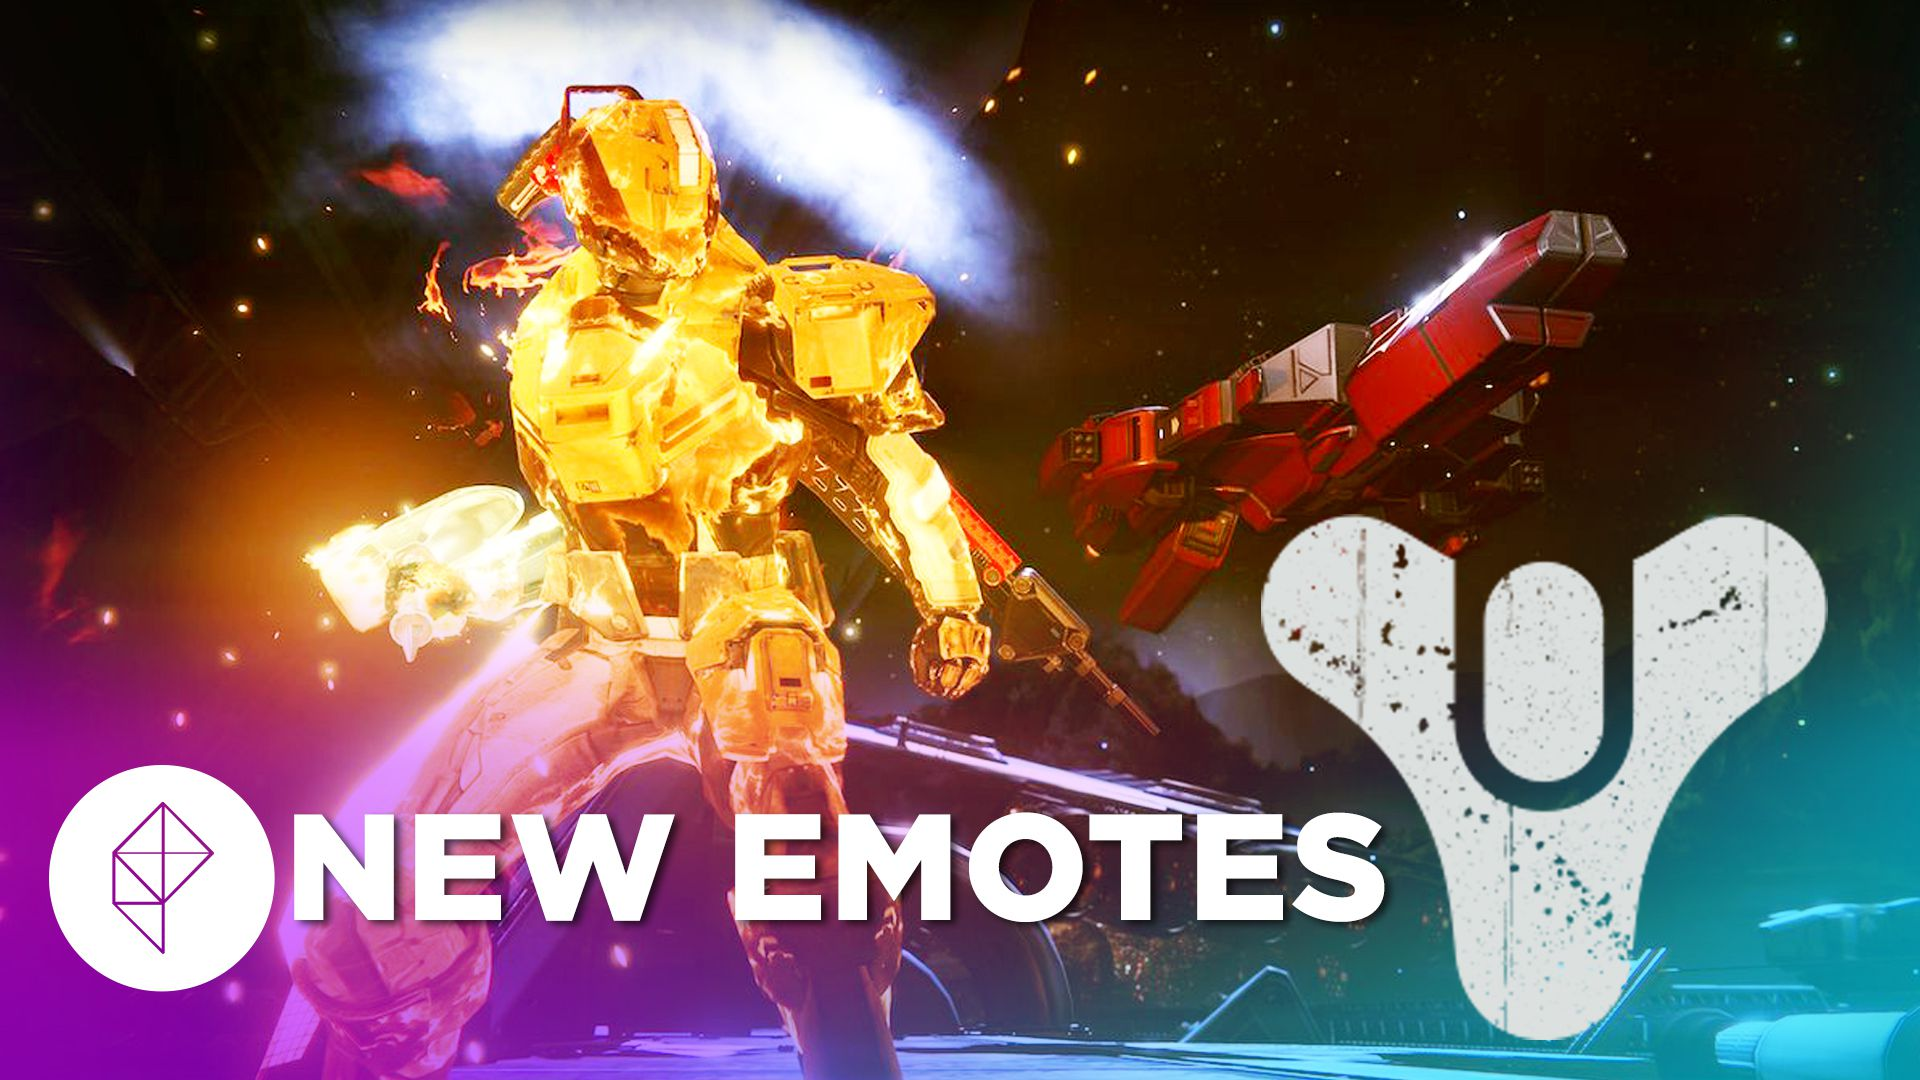 Destiny is getting new emotes inspired by Seinfeld, Dark Souls and Shia LaBeouf